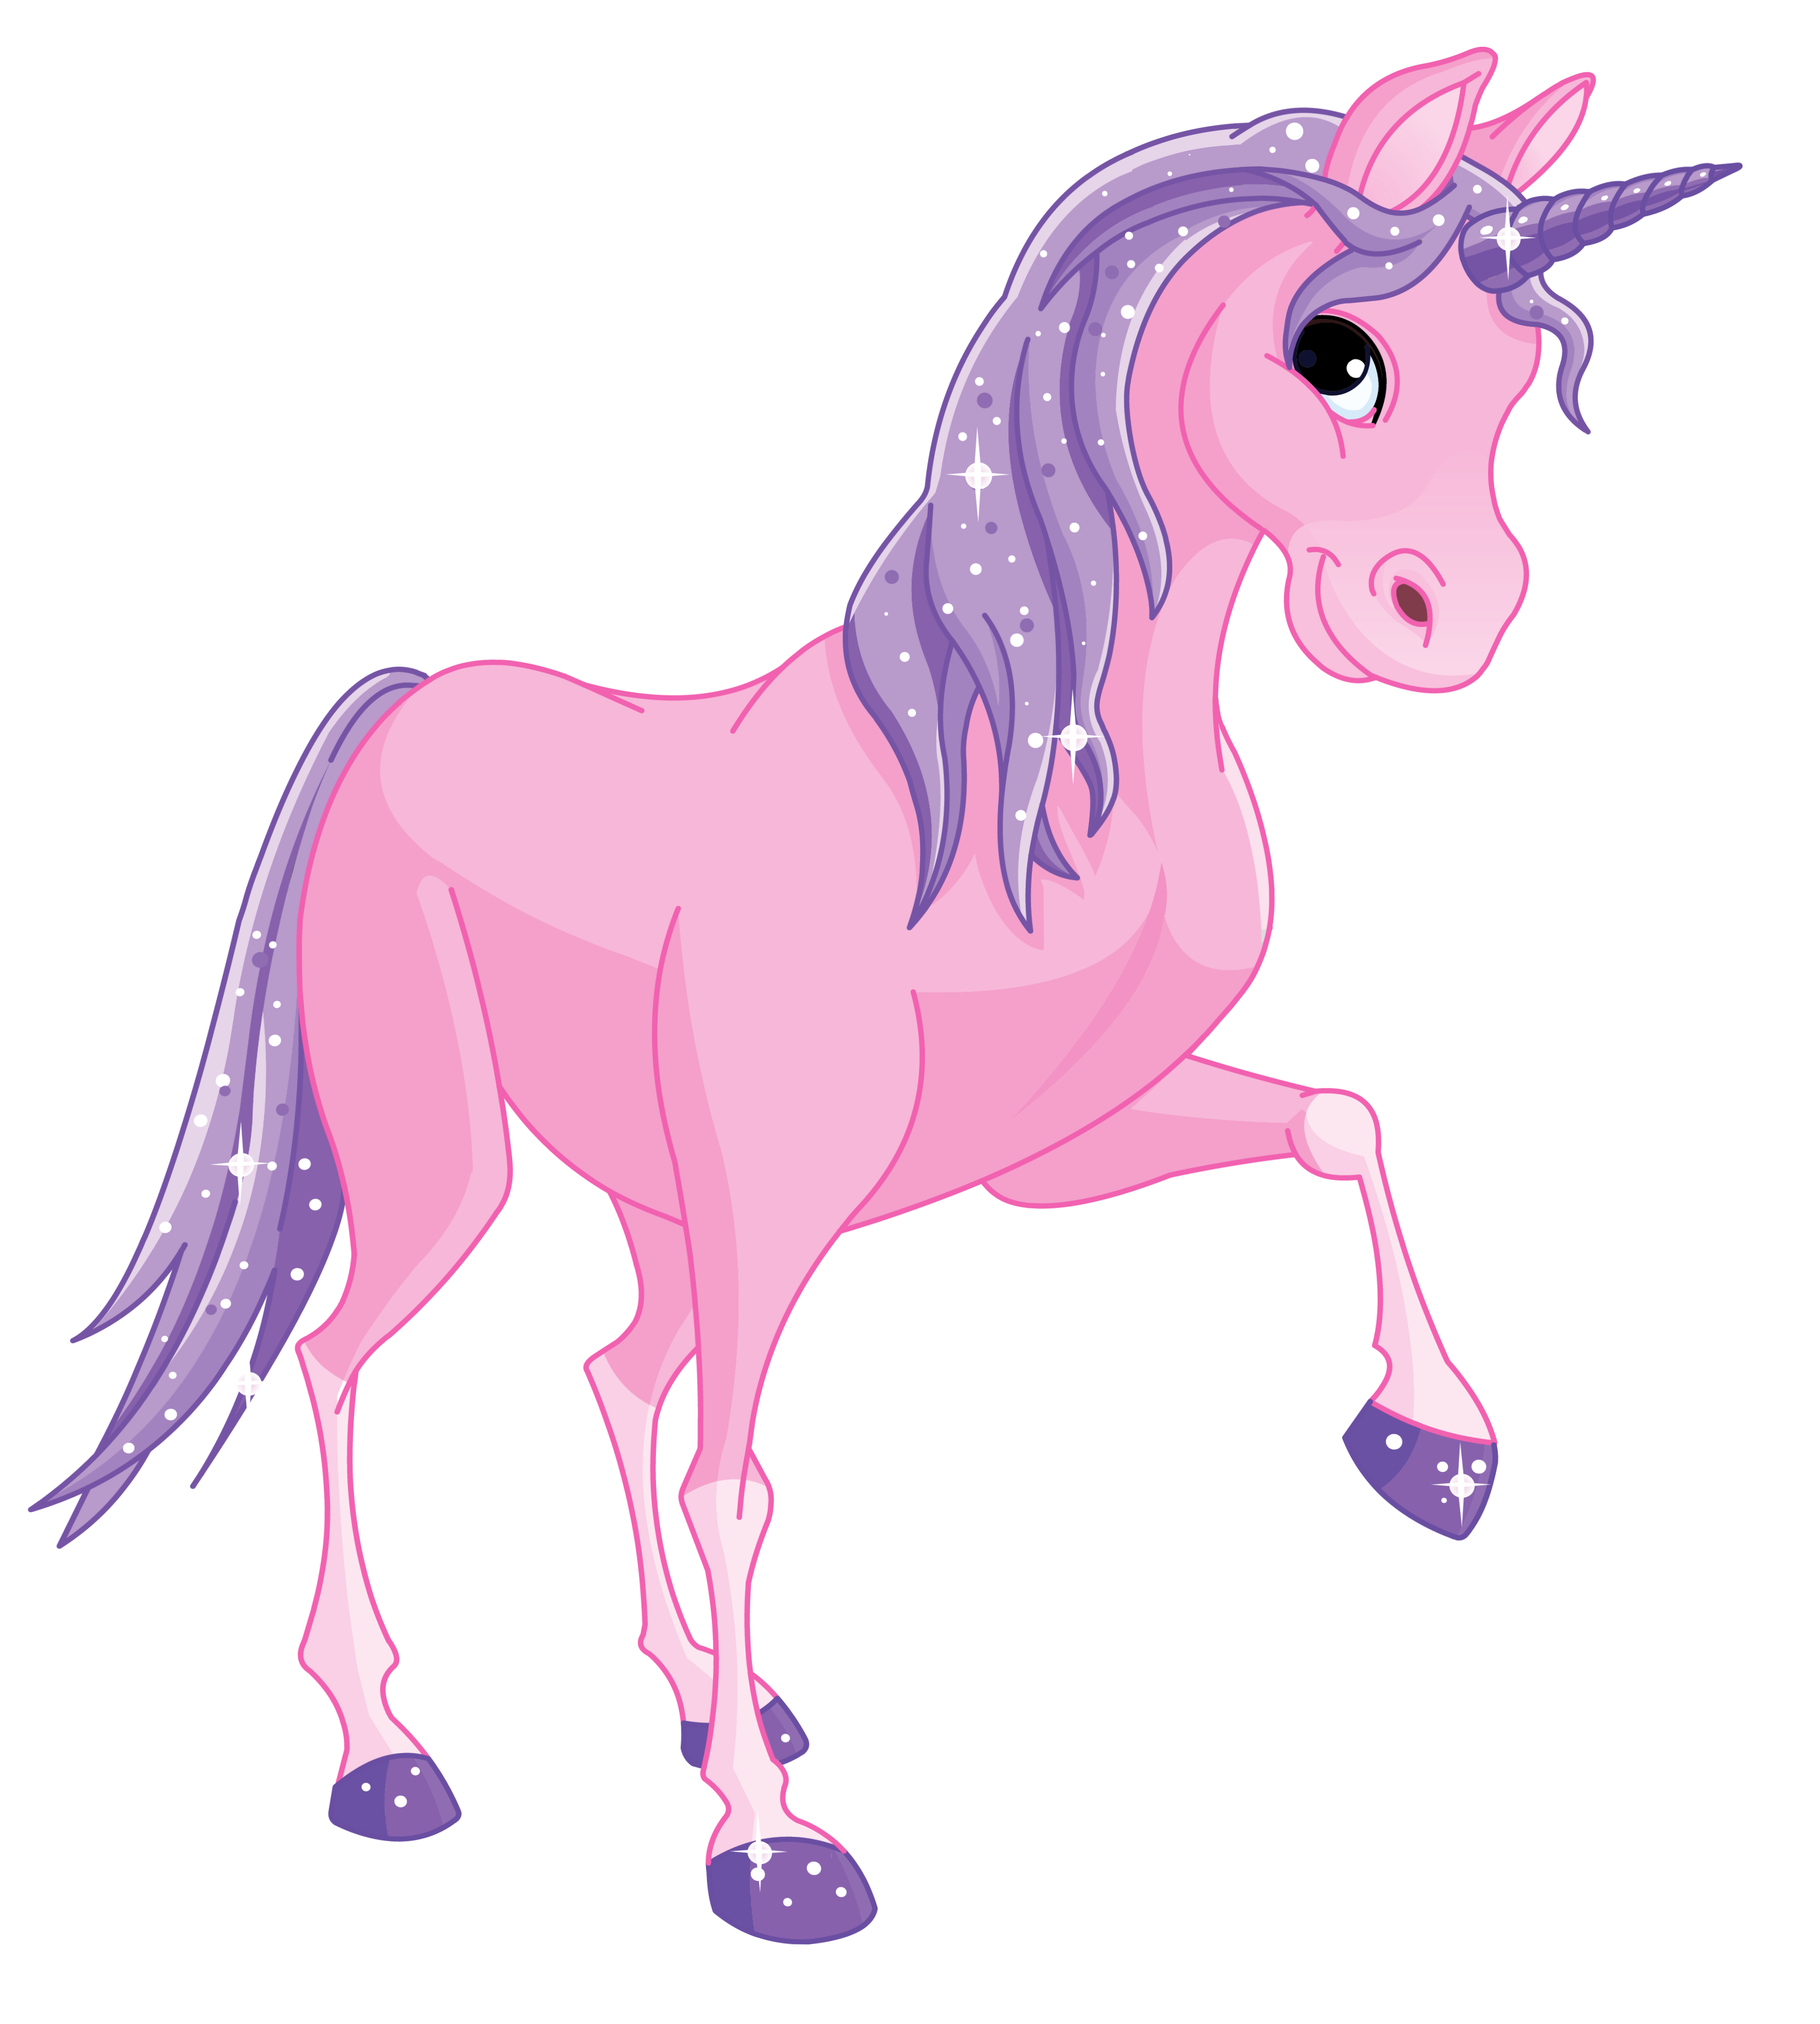 Pink Unicorn Png, png collections at sccpre.cat.